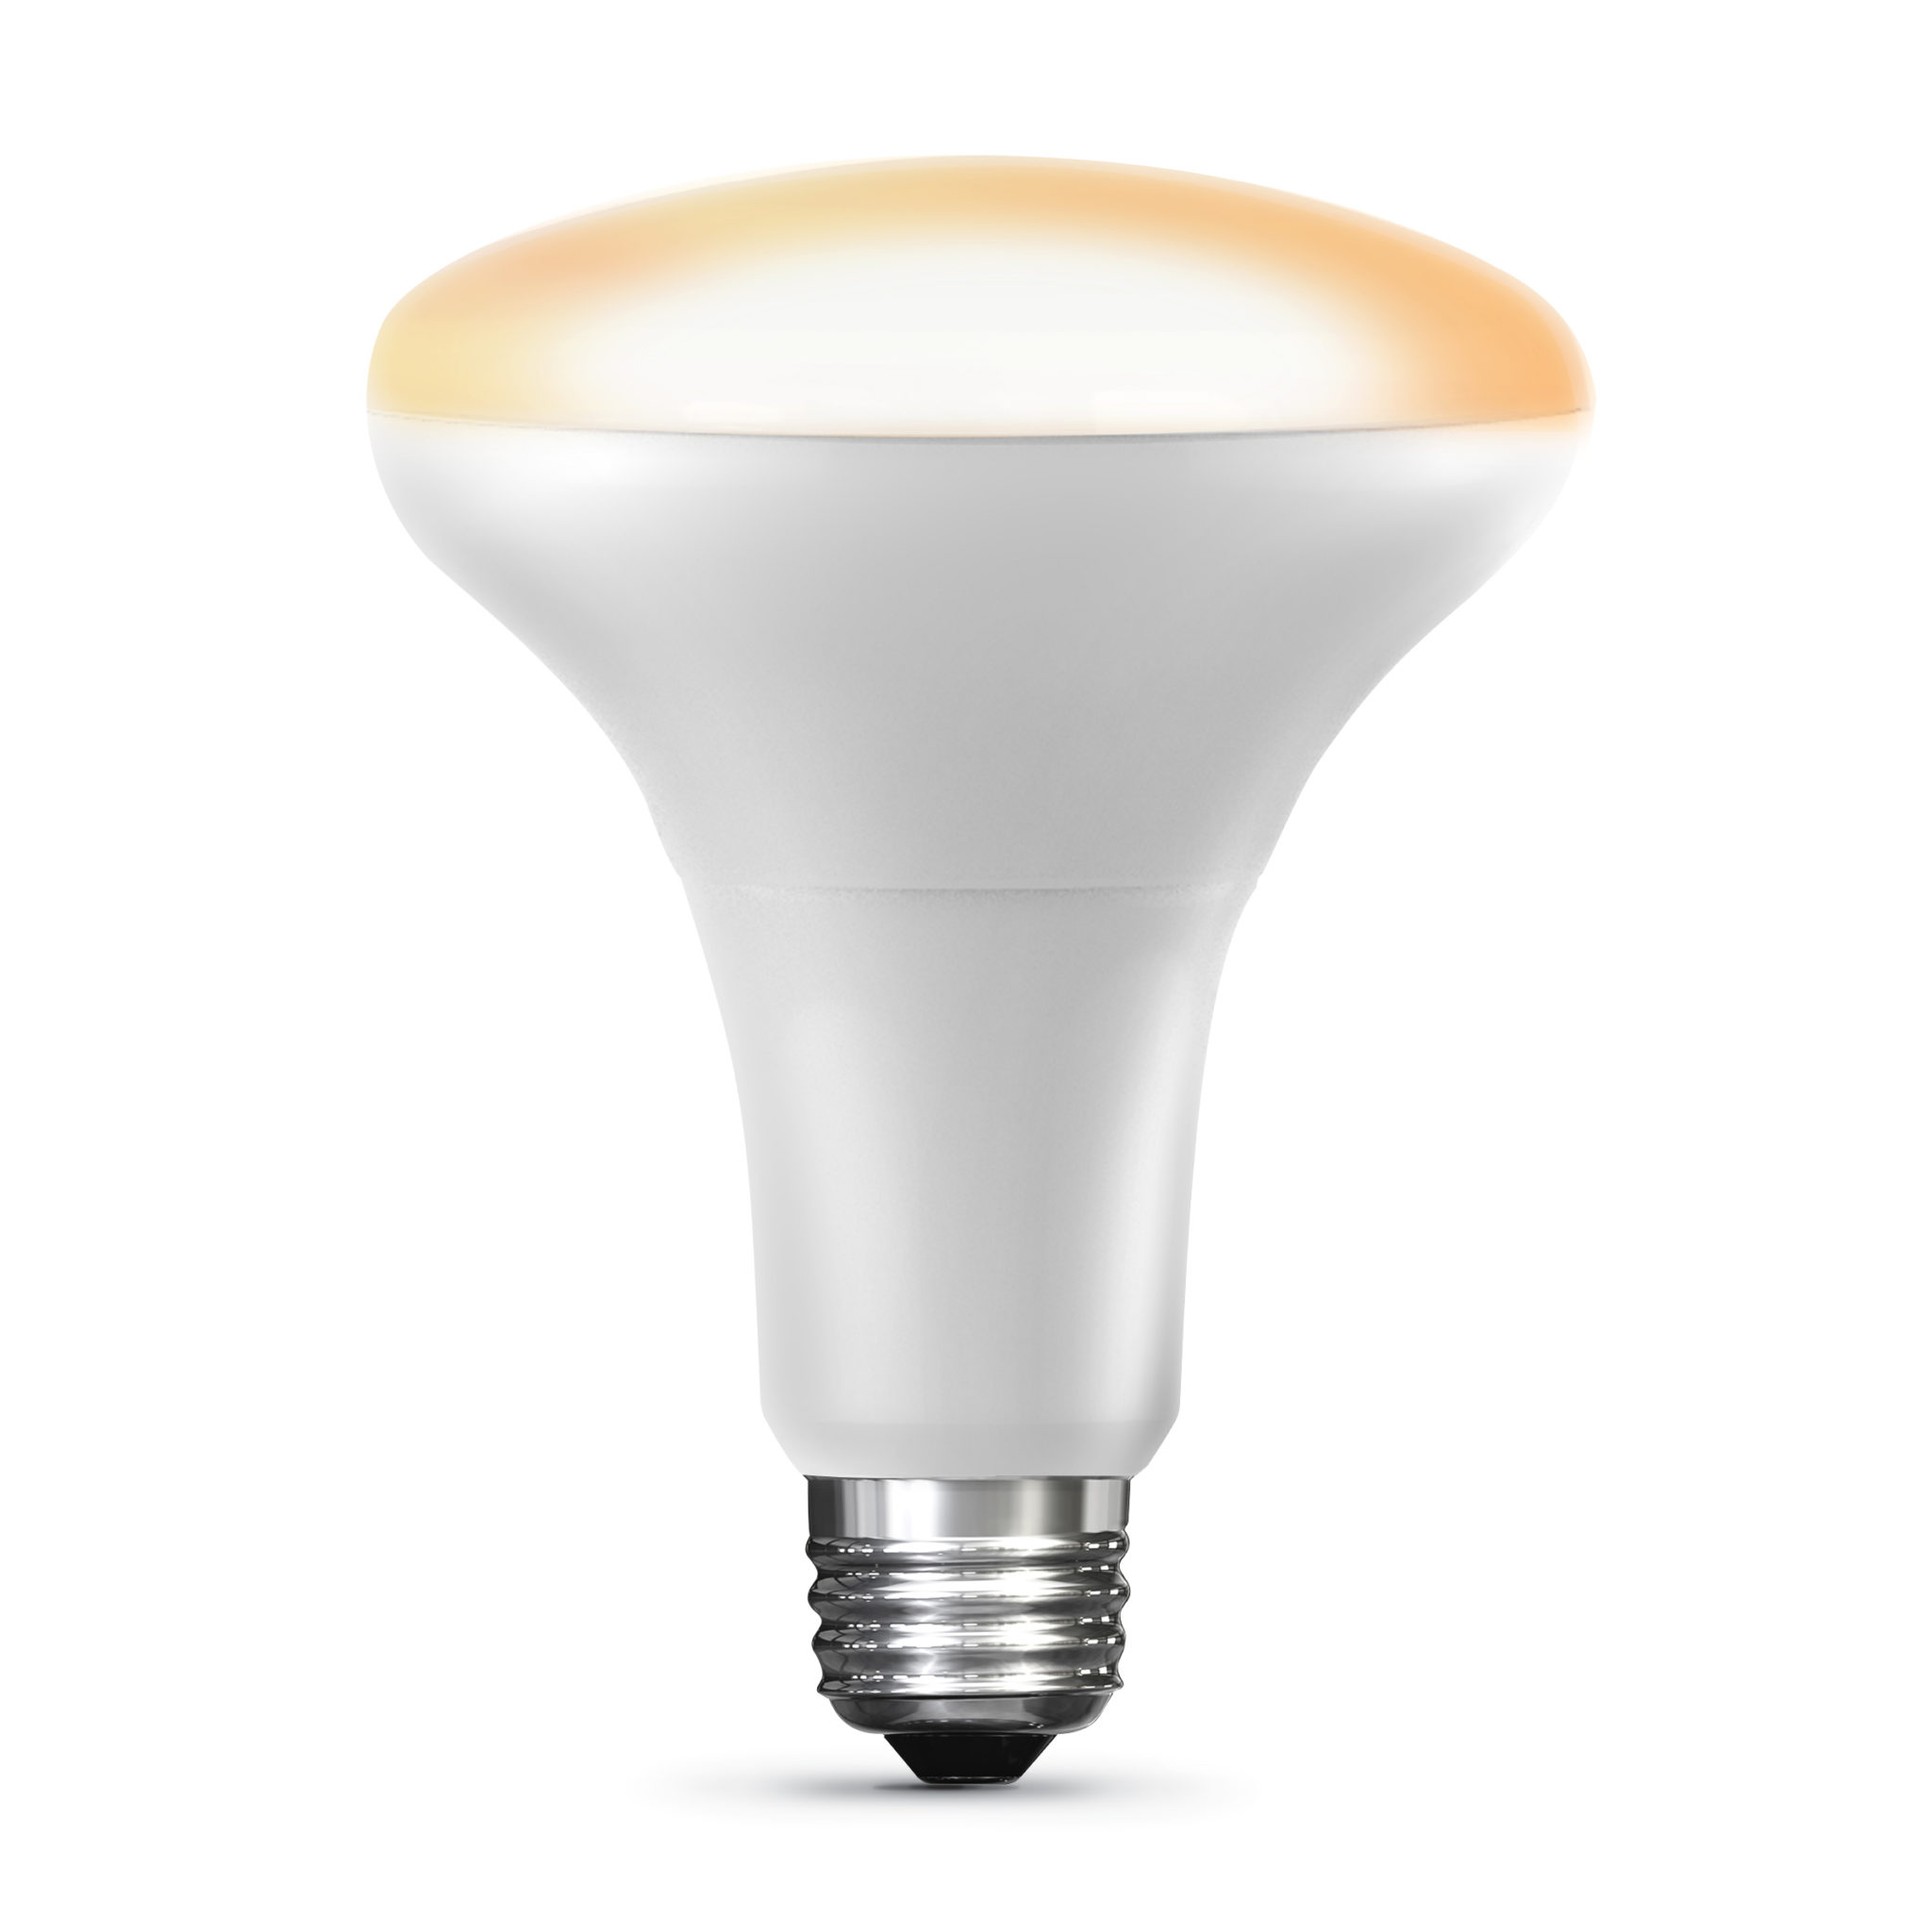 65 Watt Equivalent Soft White BR30 Apple HomeKit Smart Bulb